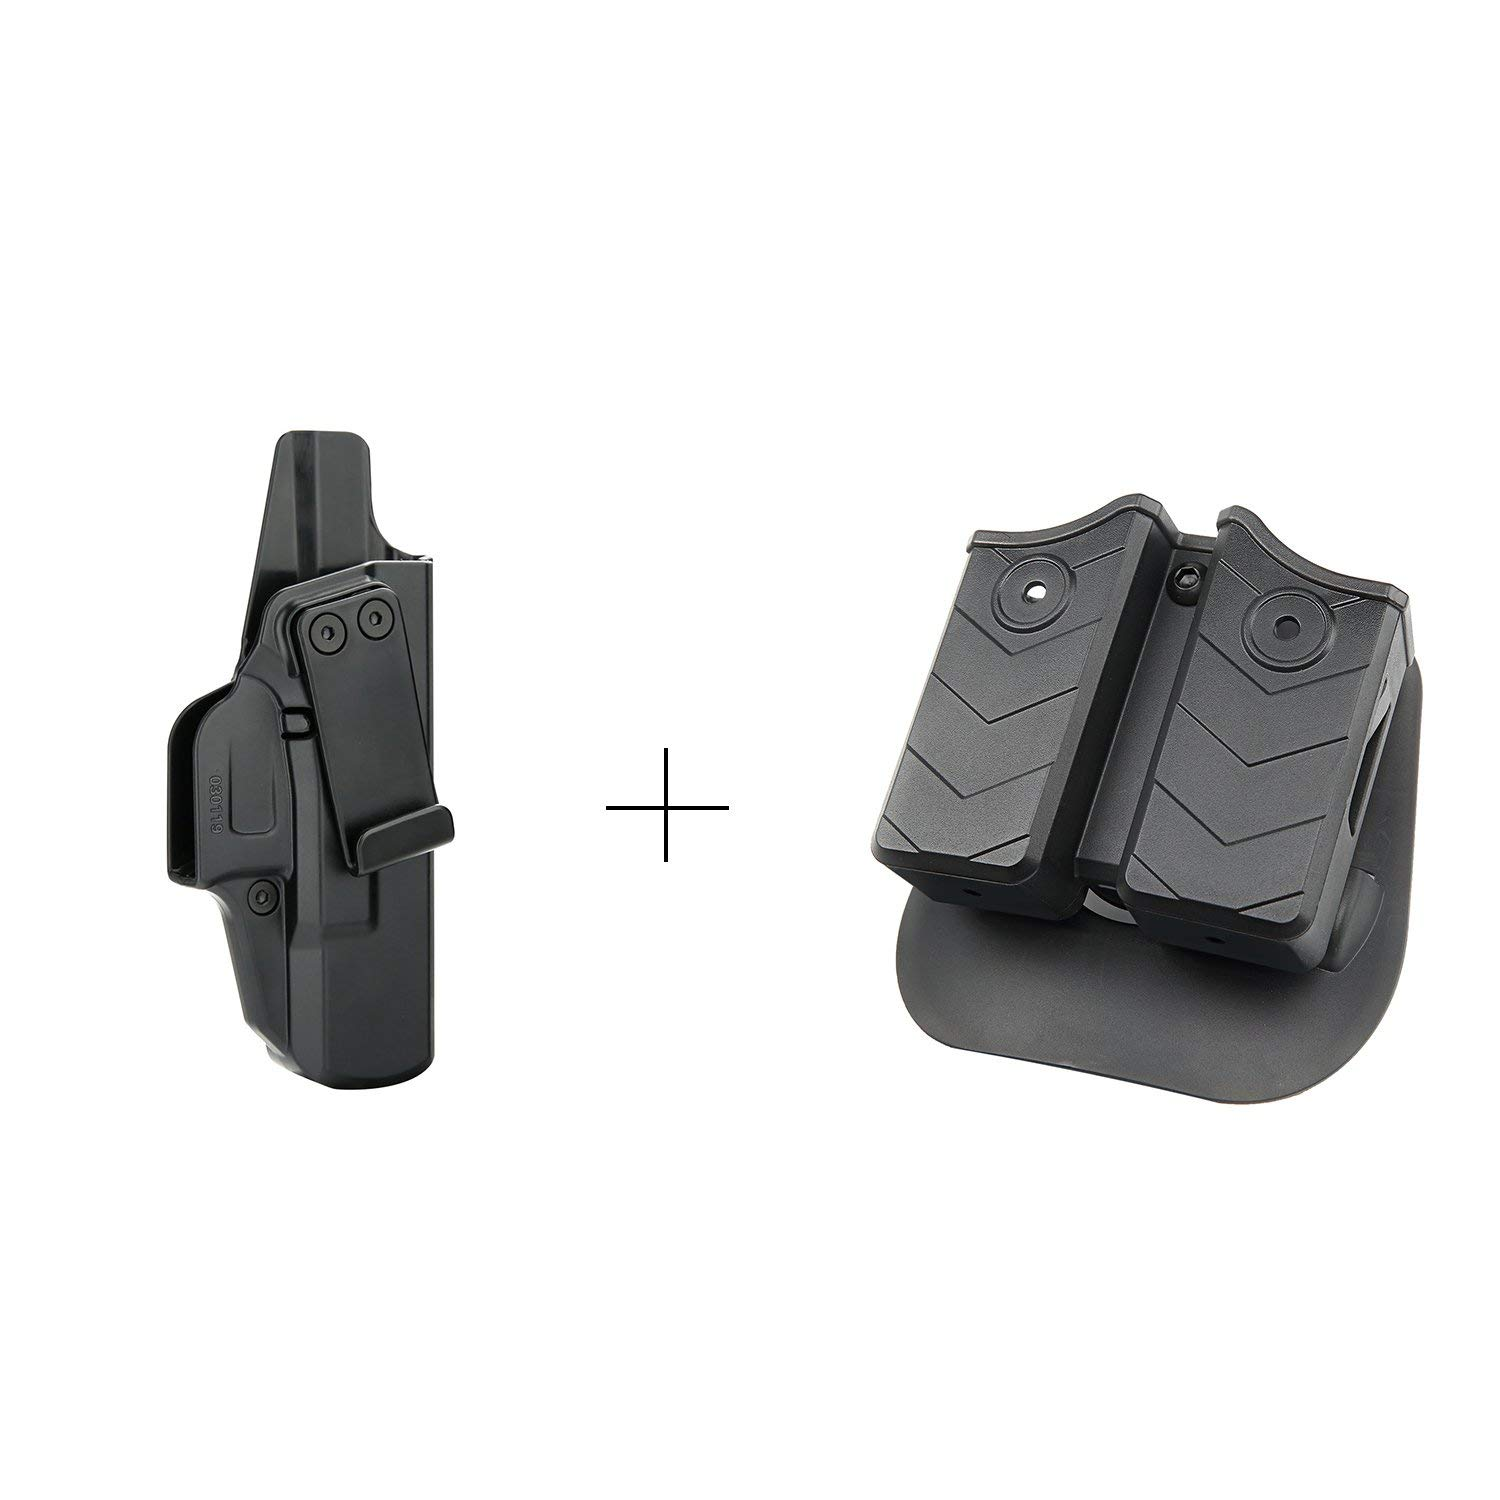 efluky Double Mag Pouch OWB + Concealed Holster IWB Carry RH, Glock Holster Kit for Glock 19 19X 23 26 27 32 33(Gen1-4), Fits 9mm .40 Caliber